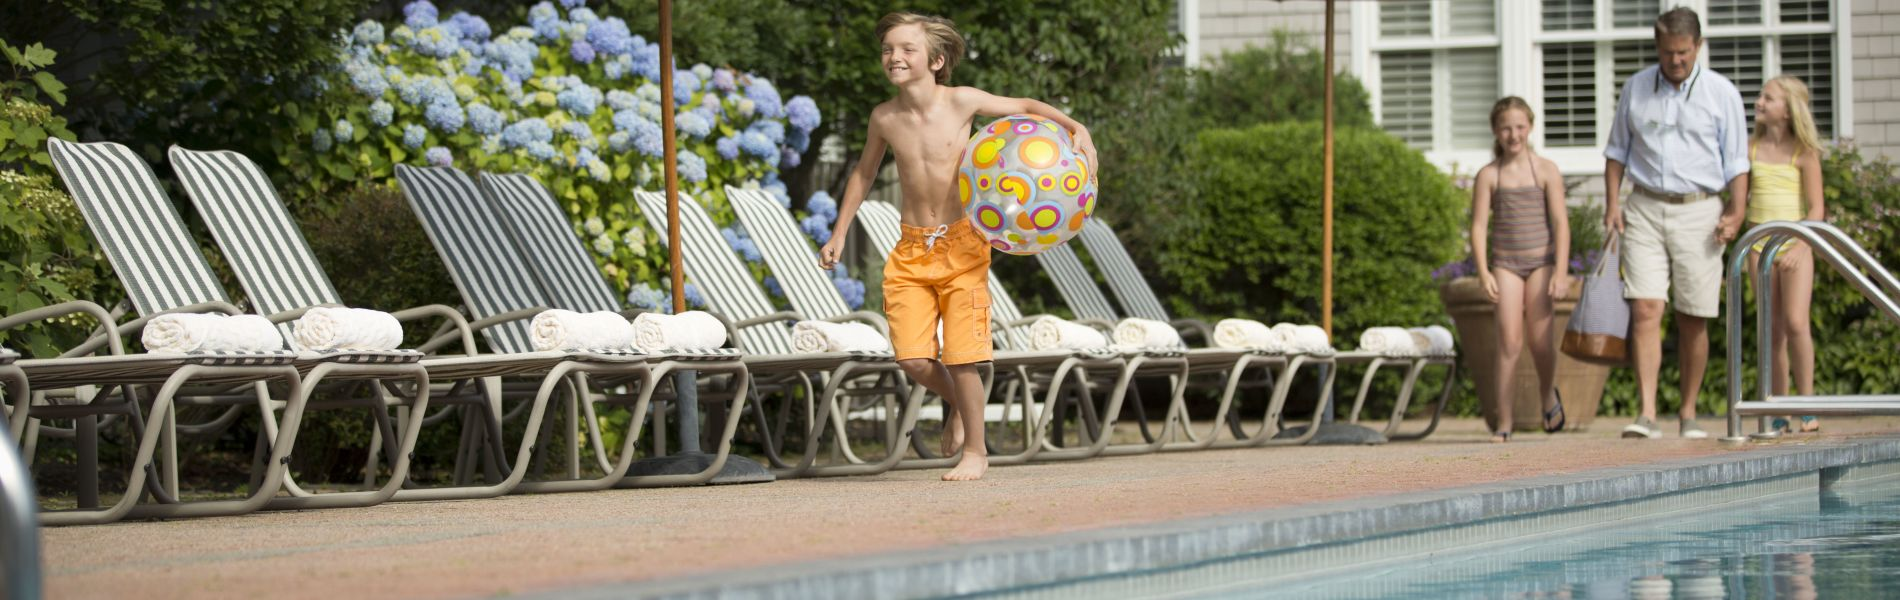 Martha's Vineyard Amenities - Enjoy Poolside Access from your private Martha's Vineyard Home at the Captain's Cottages